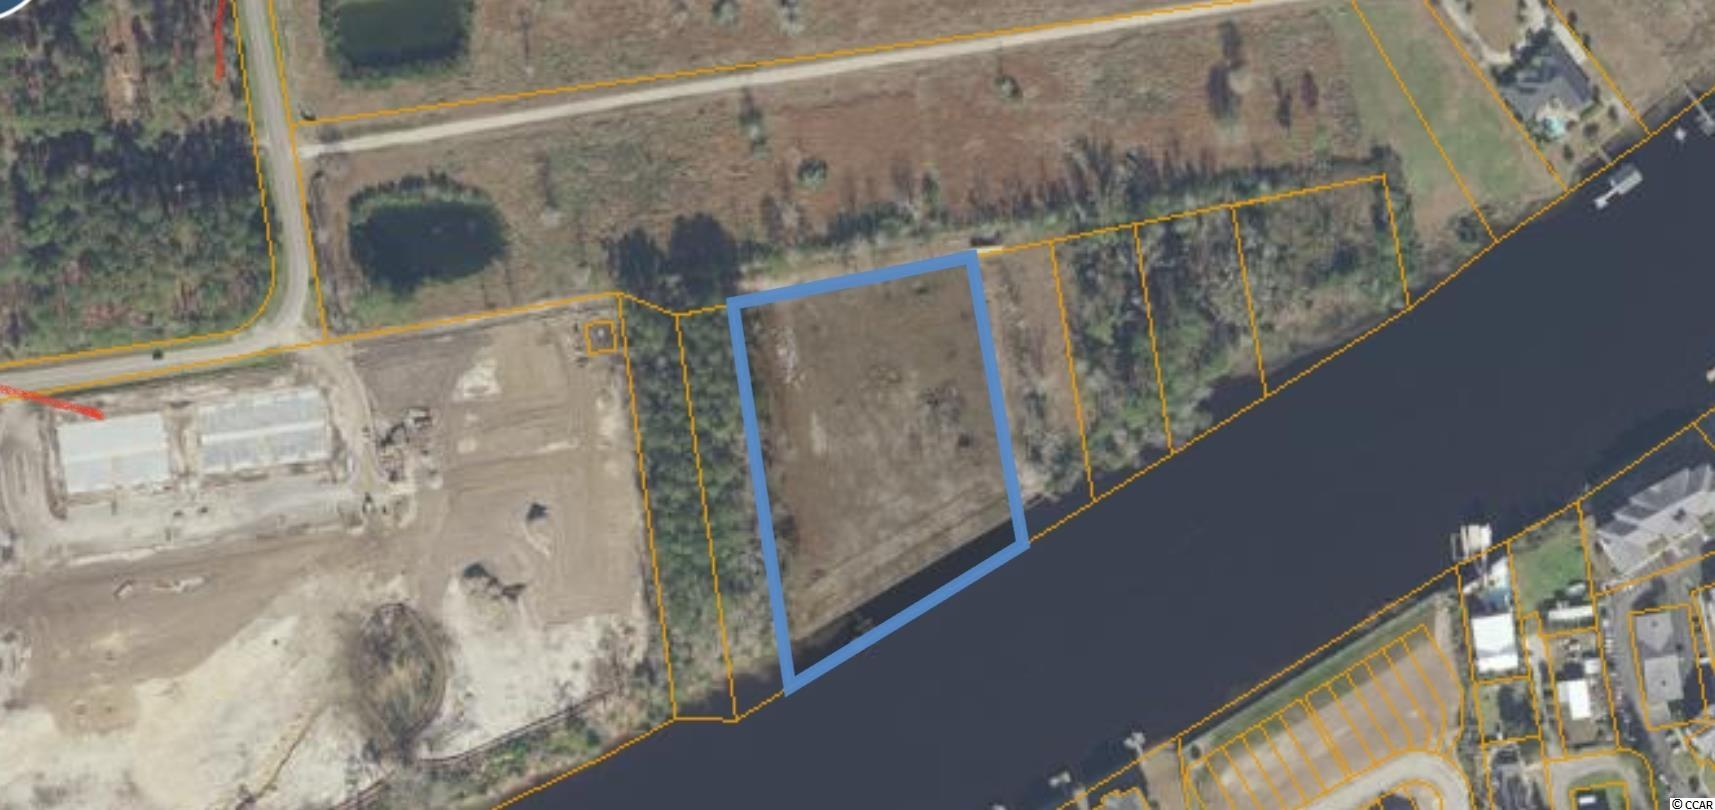 3.2 acres with approximately 350ft directly on the Intacoastal Waterway including a seawall and dock in North Myrtle Beach just off of 31 and short distance from Main Street in North Myrtle. No HOA or subdivision.  Land is mostly cleared.  Anyone looking for a large private home on the waterway then look no further!  Property is perfectly situated just off of highway 31 in North Myrtle Beach and only minutes from all area attractions, shopping, golf, entertainment, major roadways and sandy beaches.  Other options for the property are being looked into including subdividing and other residential uses.  Not another property on the waterway left like this anywhere in our market, get this one before its gone!